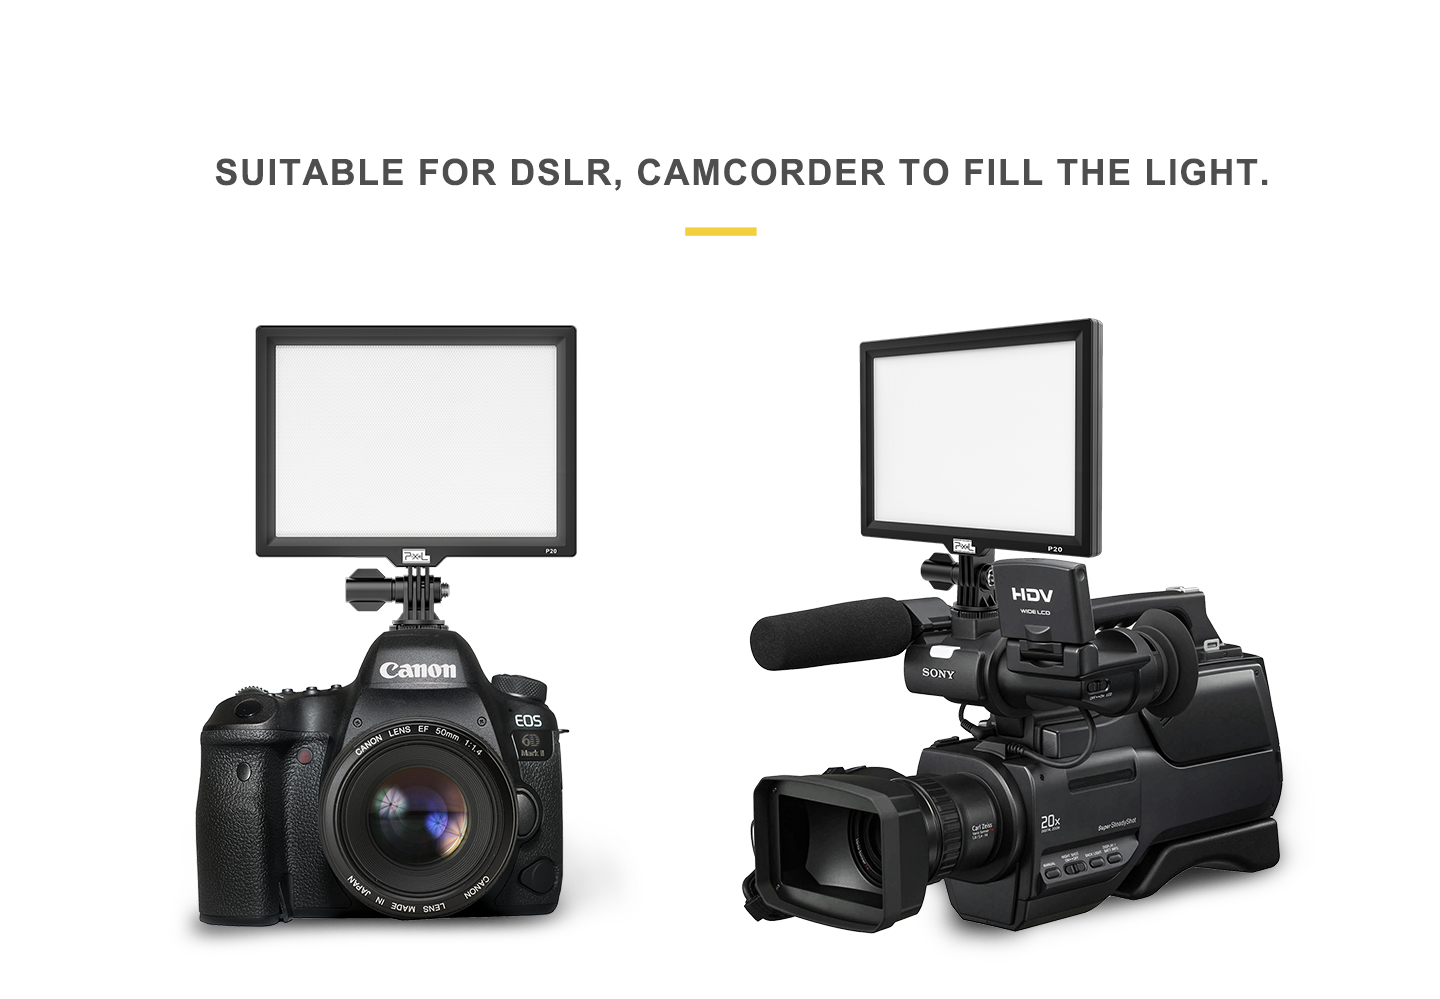 SUITABLE FOR DSLR, CAMCORDER TO FILL THE LIGHT